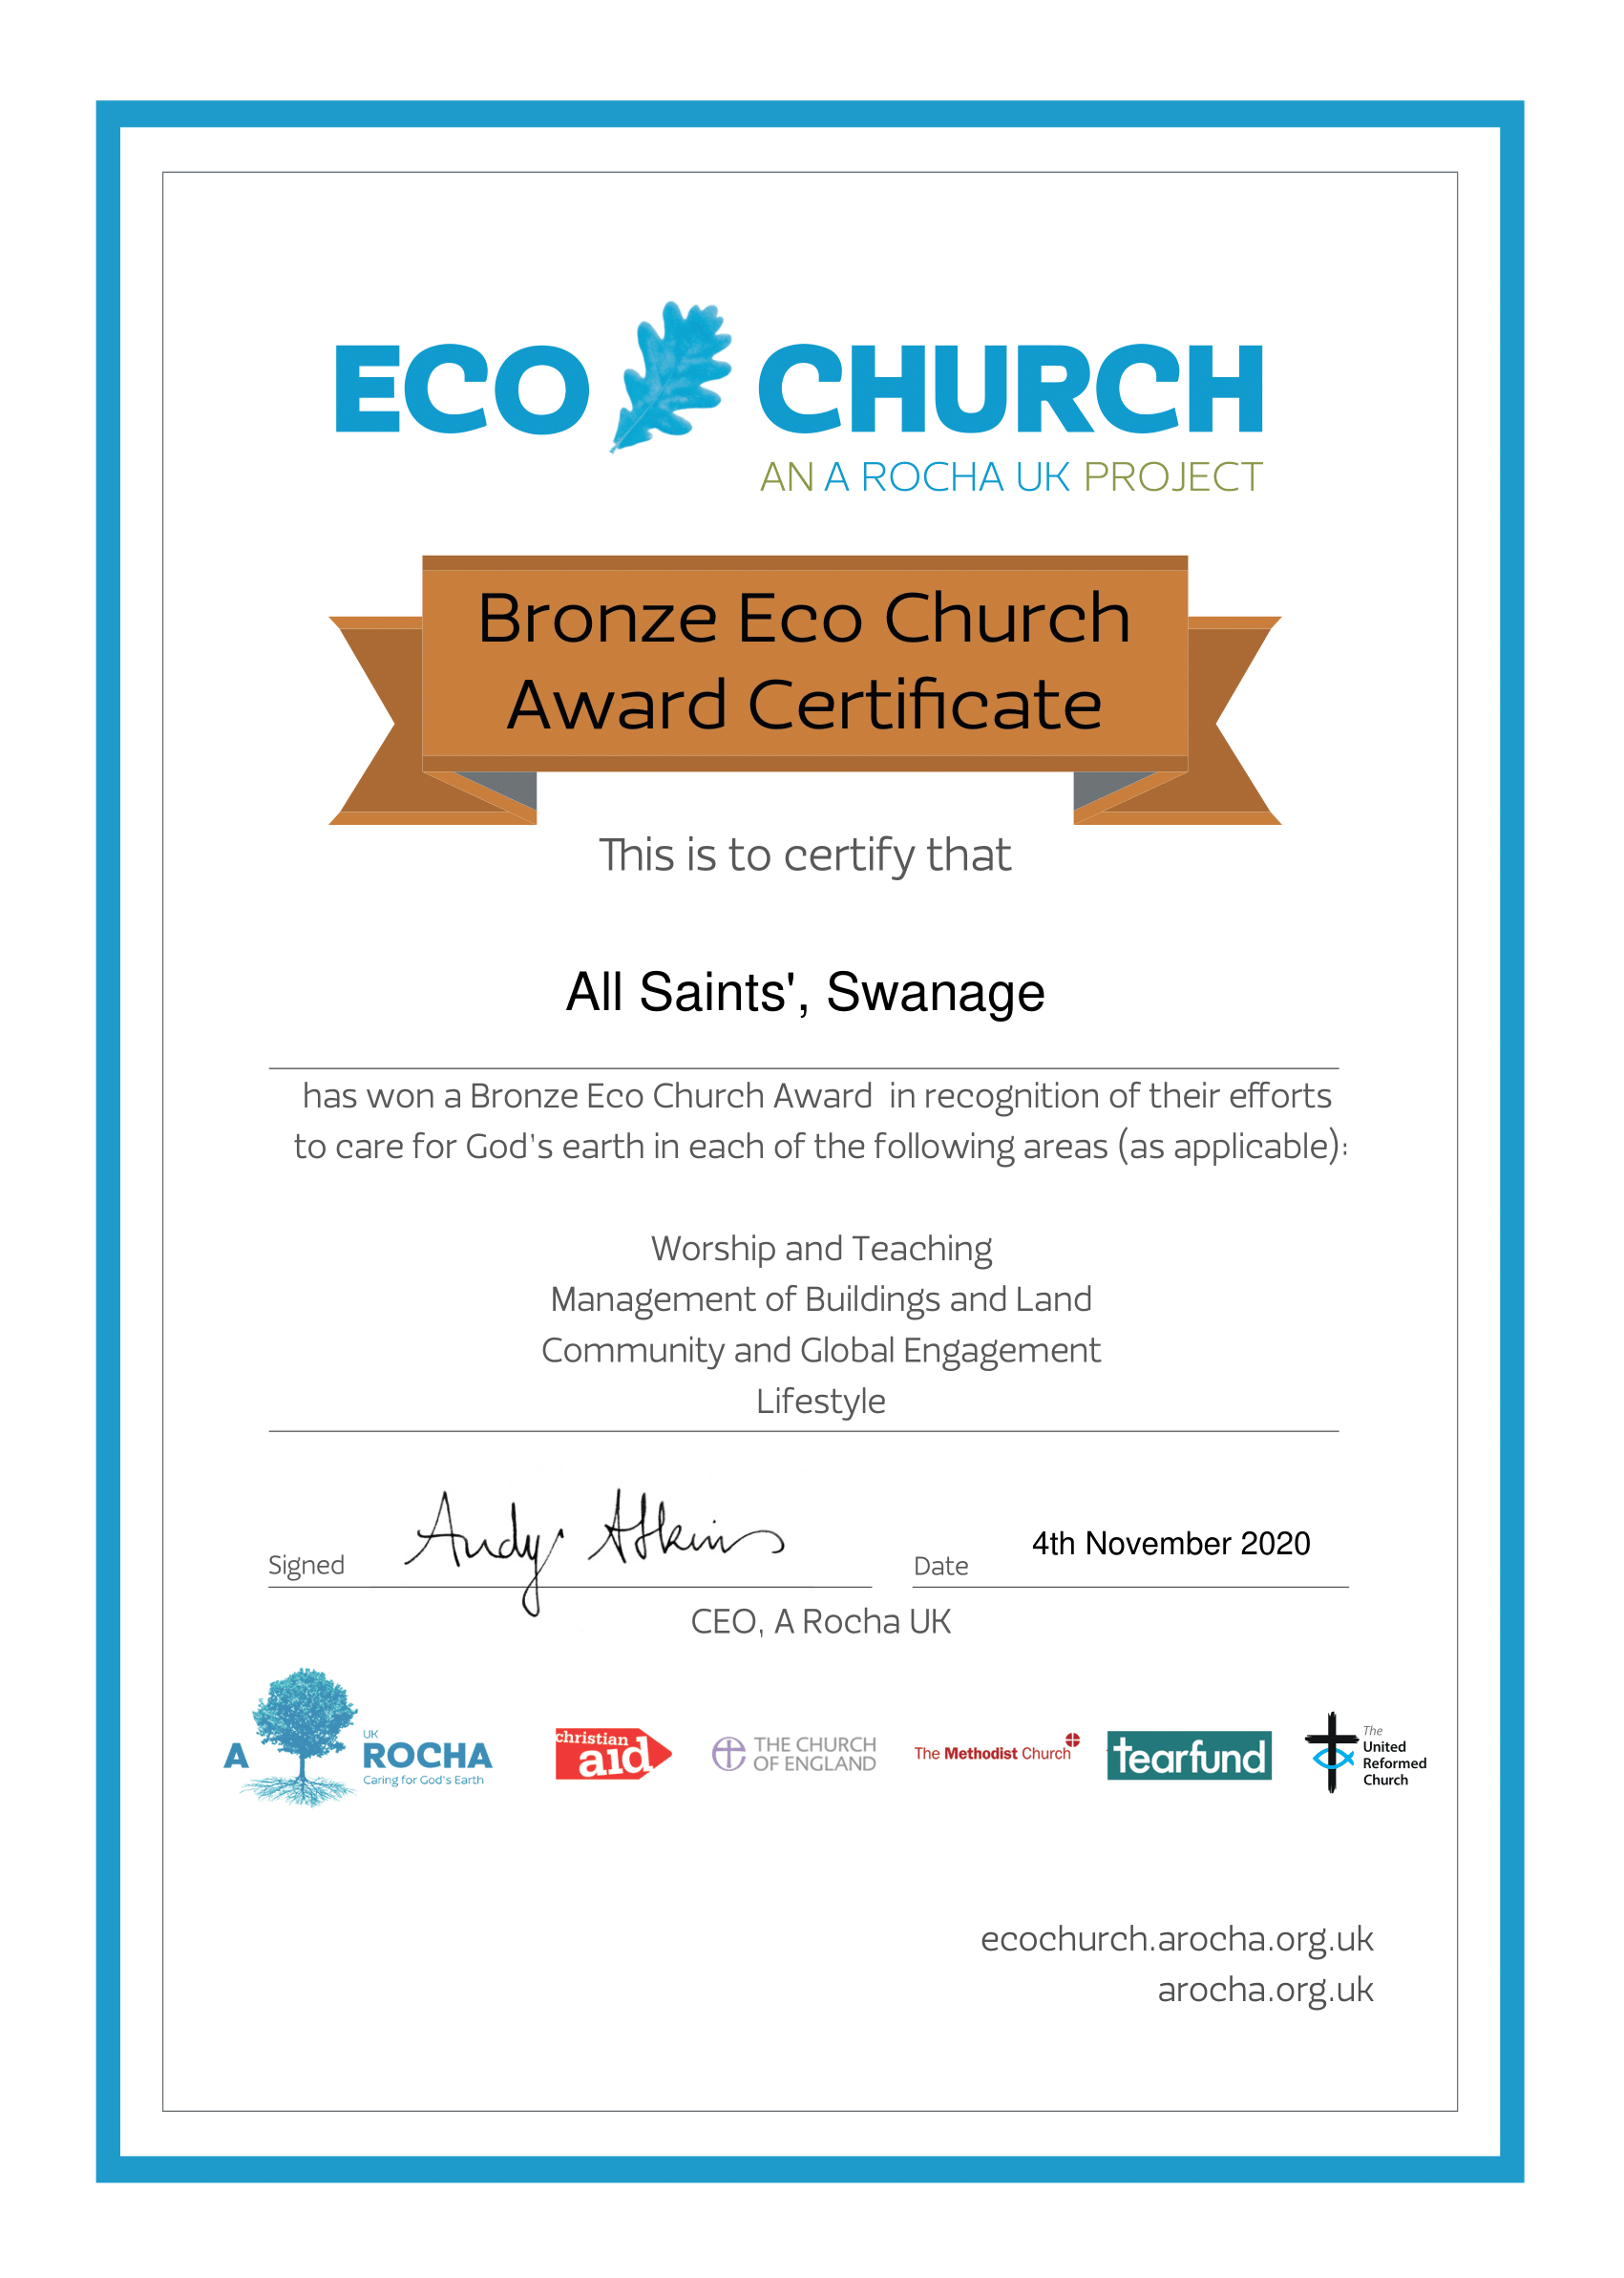 Eco Church Award Certificate Bronze   All Saints', Swanage-png.png